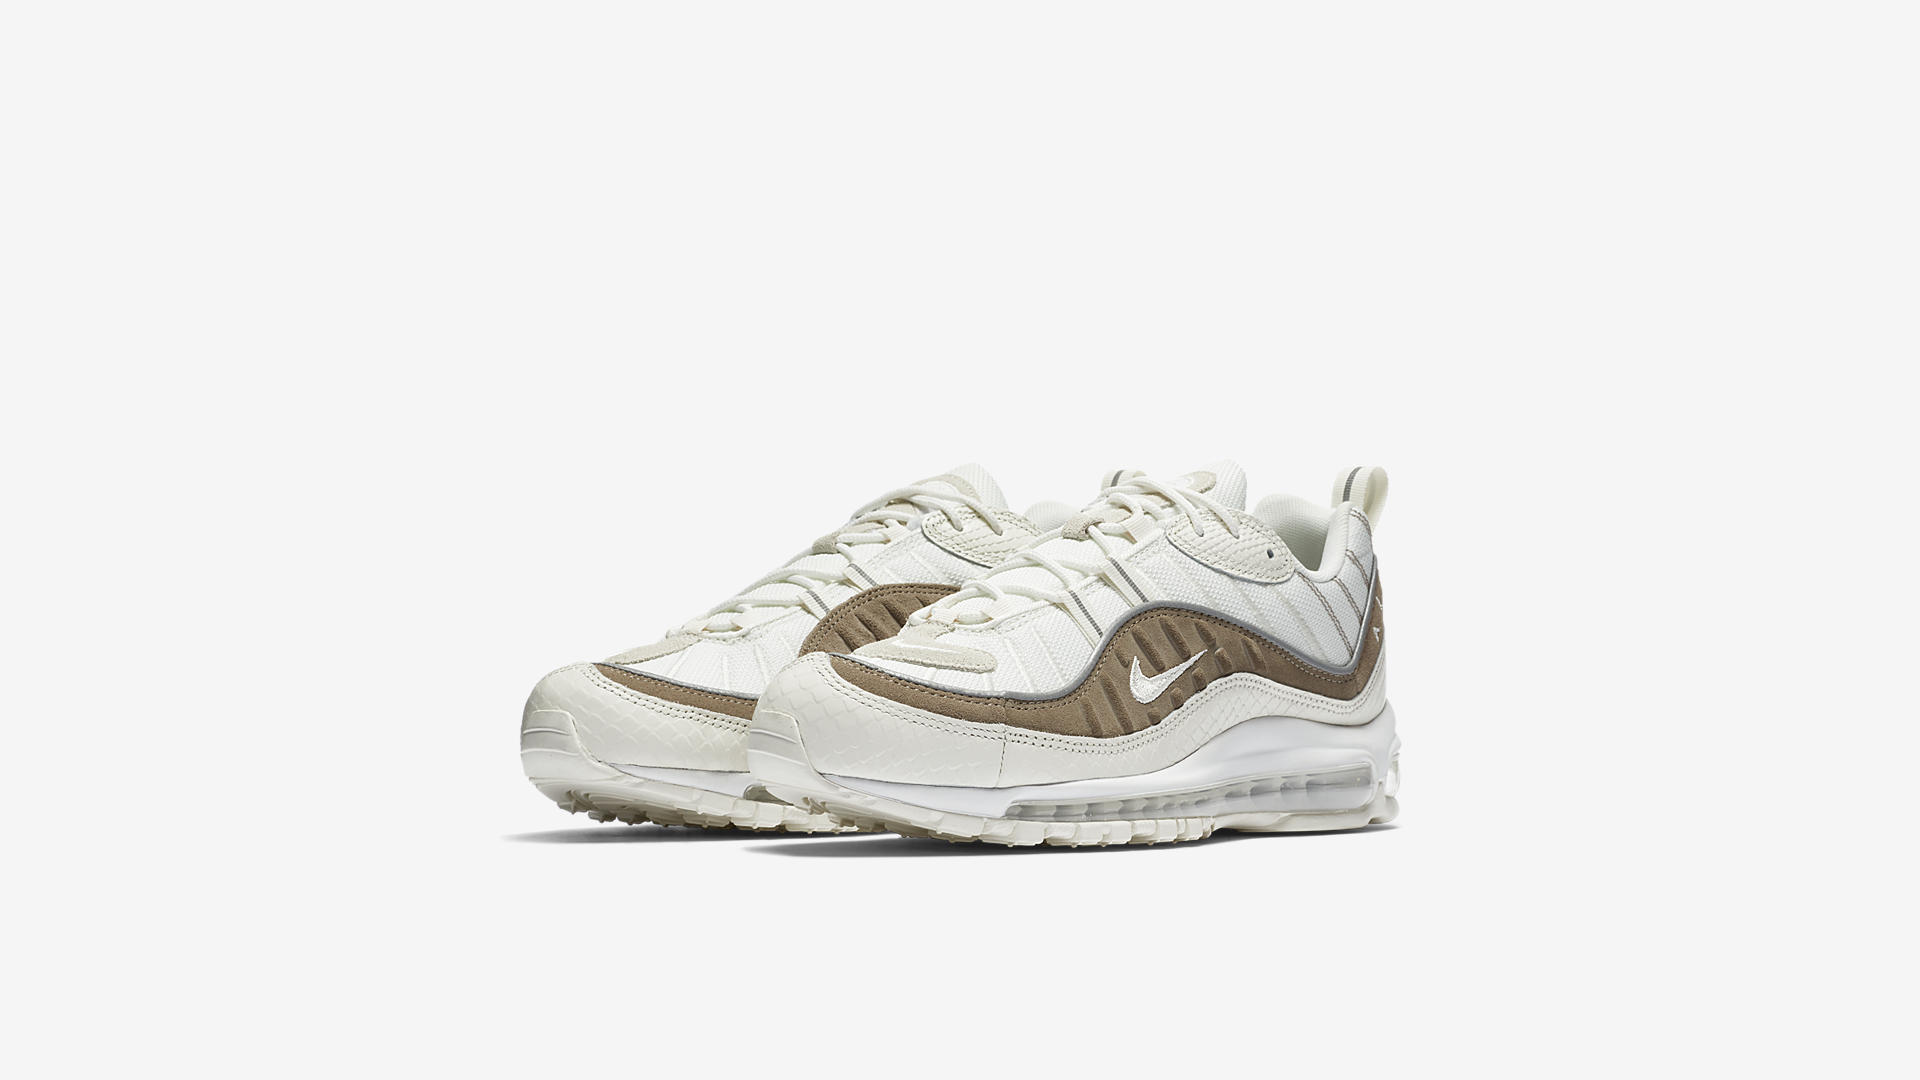 AO9380 100 Nike Air Max 98 Sail Cream 1